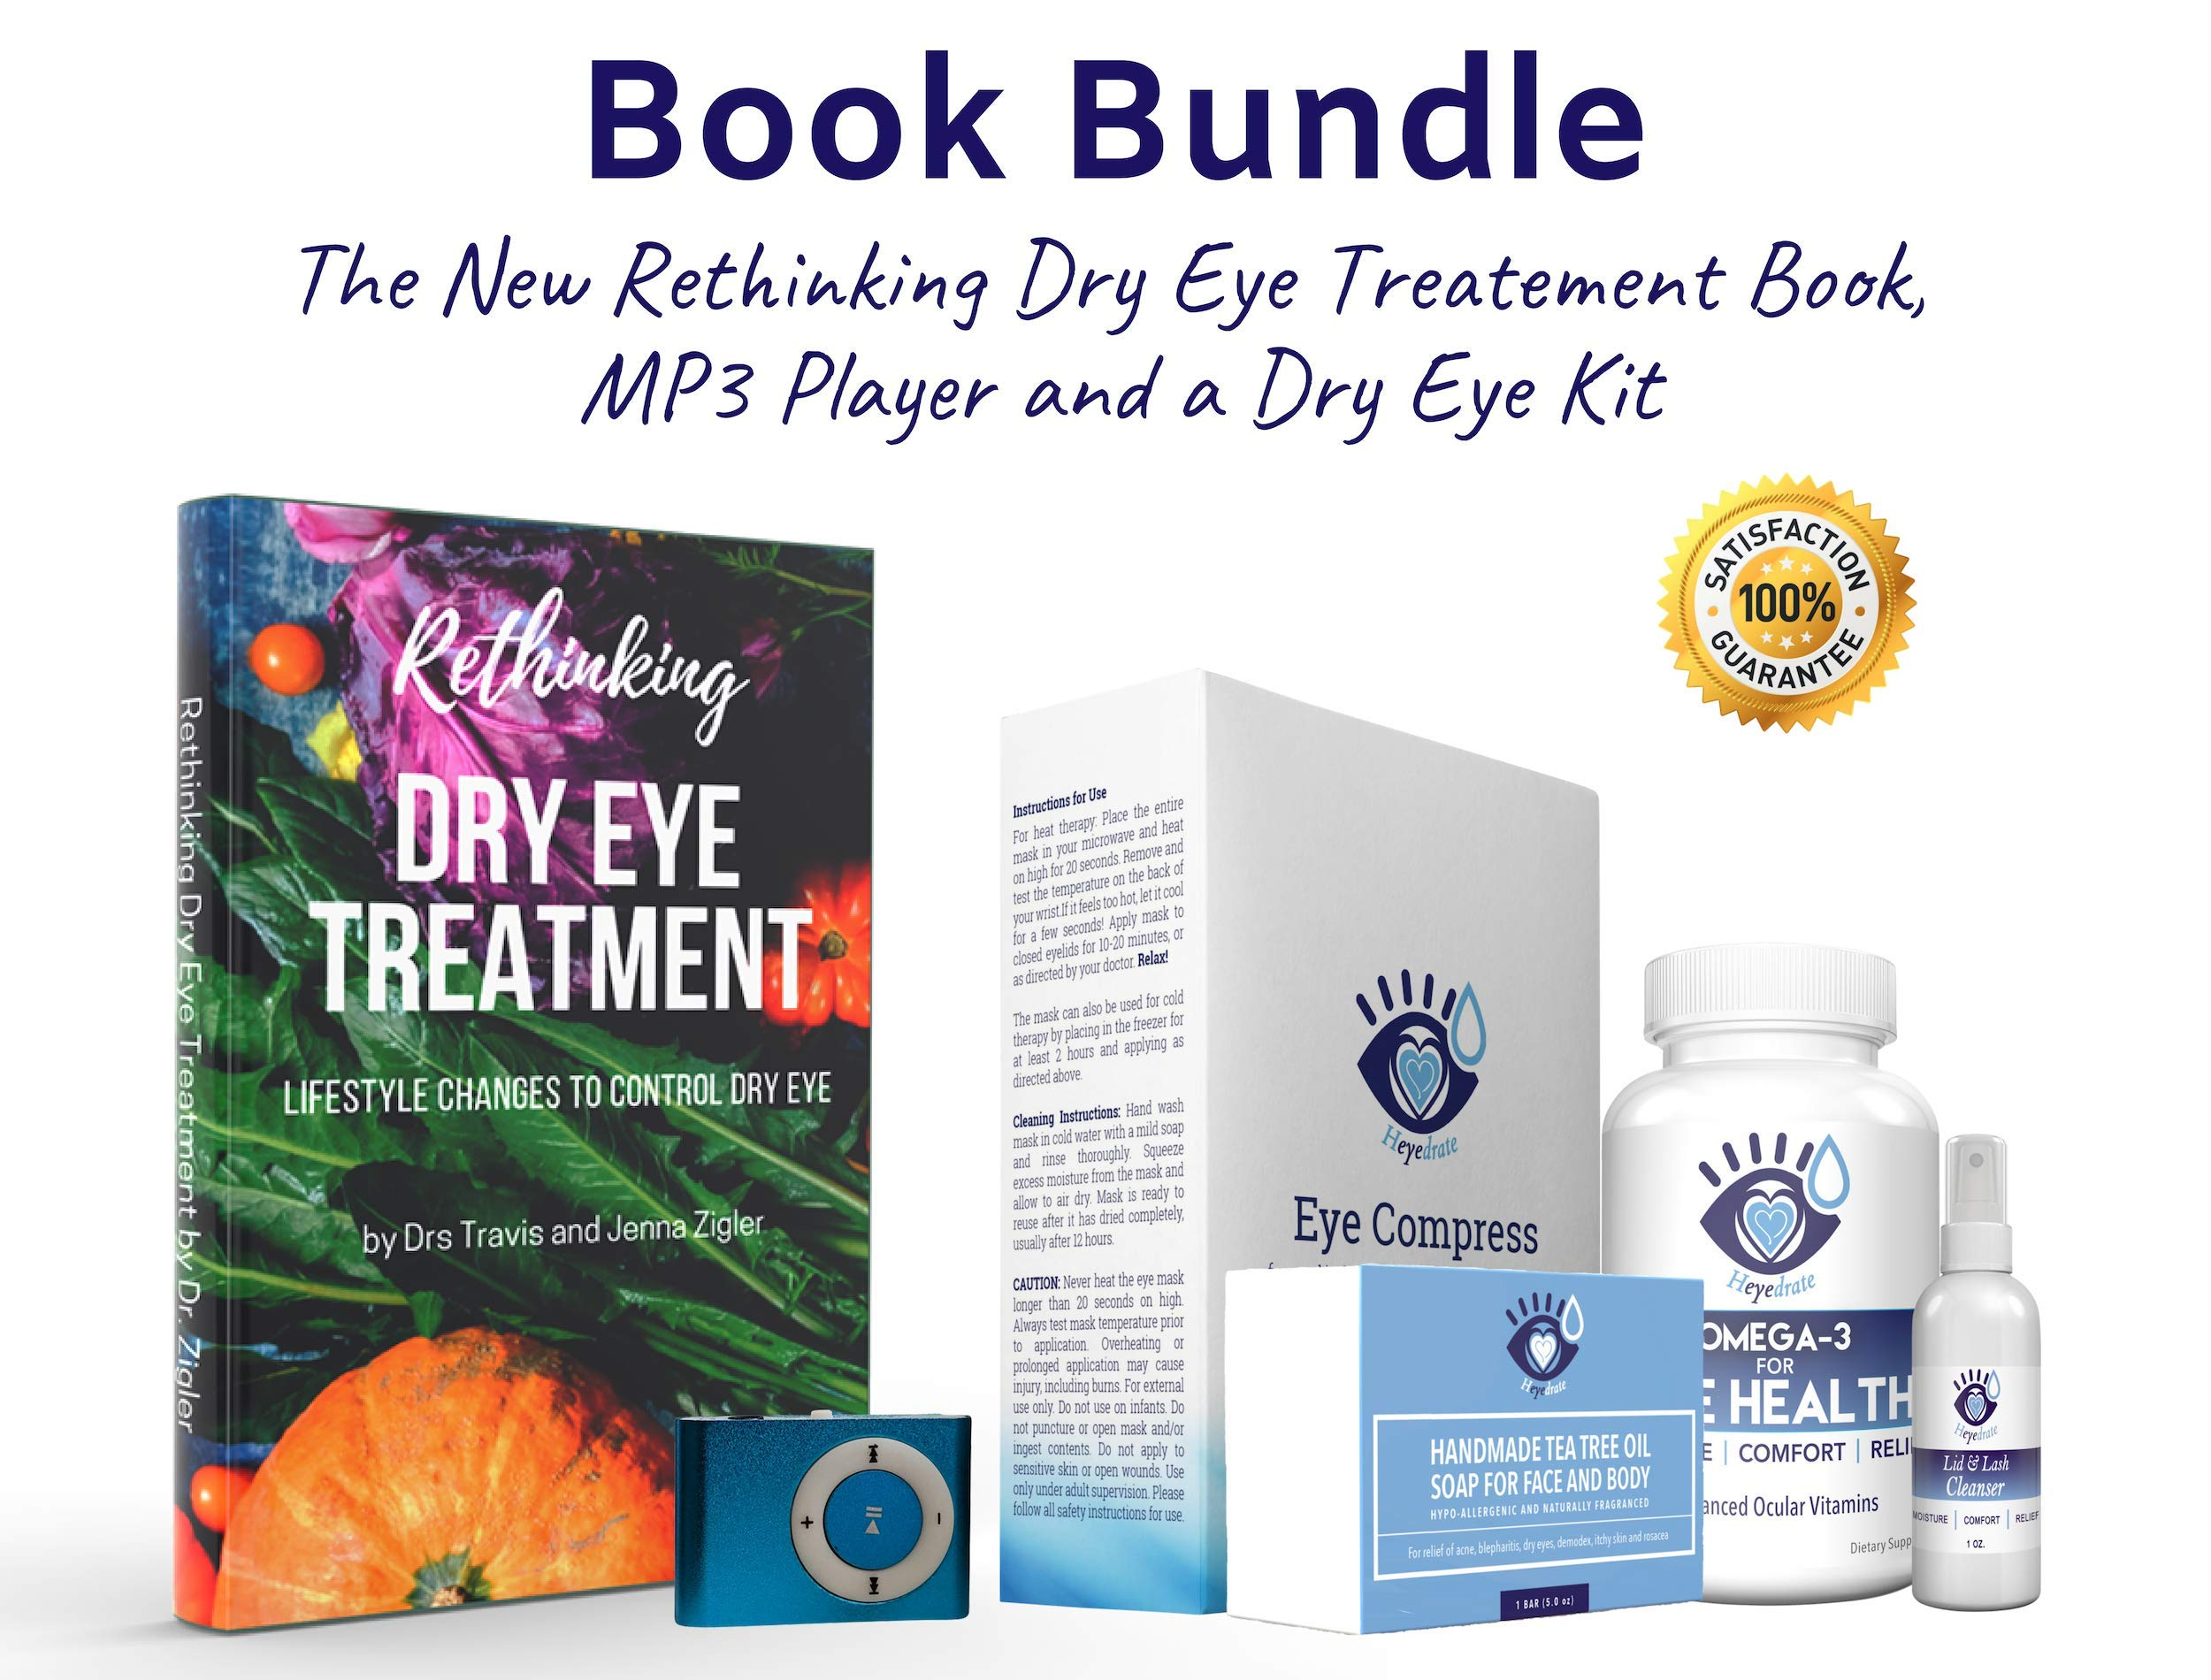 Rethinking Dry Eye Treatment Paperback Book by DRS. Jenna and Travis Zigler from The Dry Eye Show (Book, Audio Book Mp3 Player, and Eye Relief Kit) by Eye Love